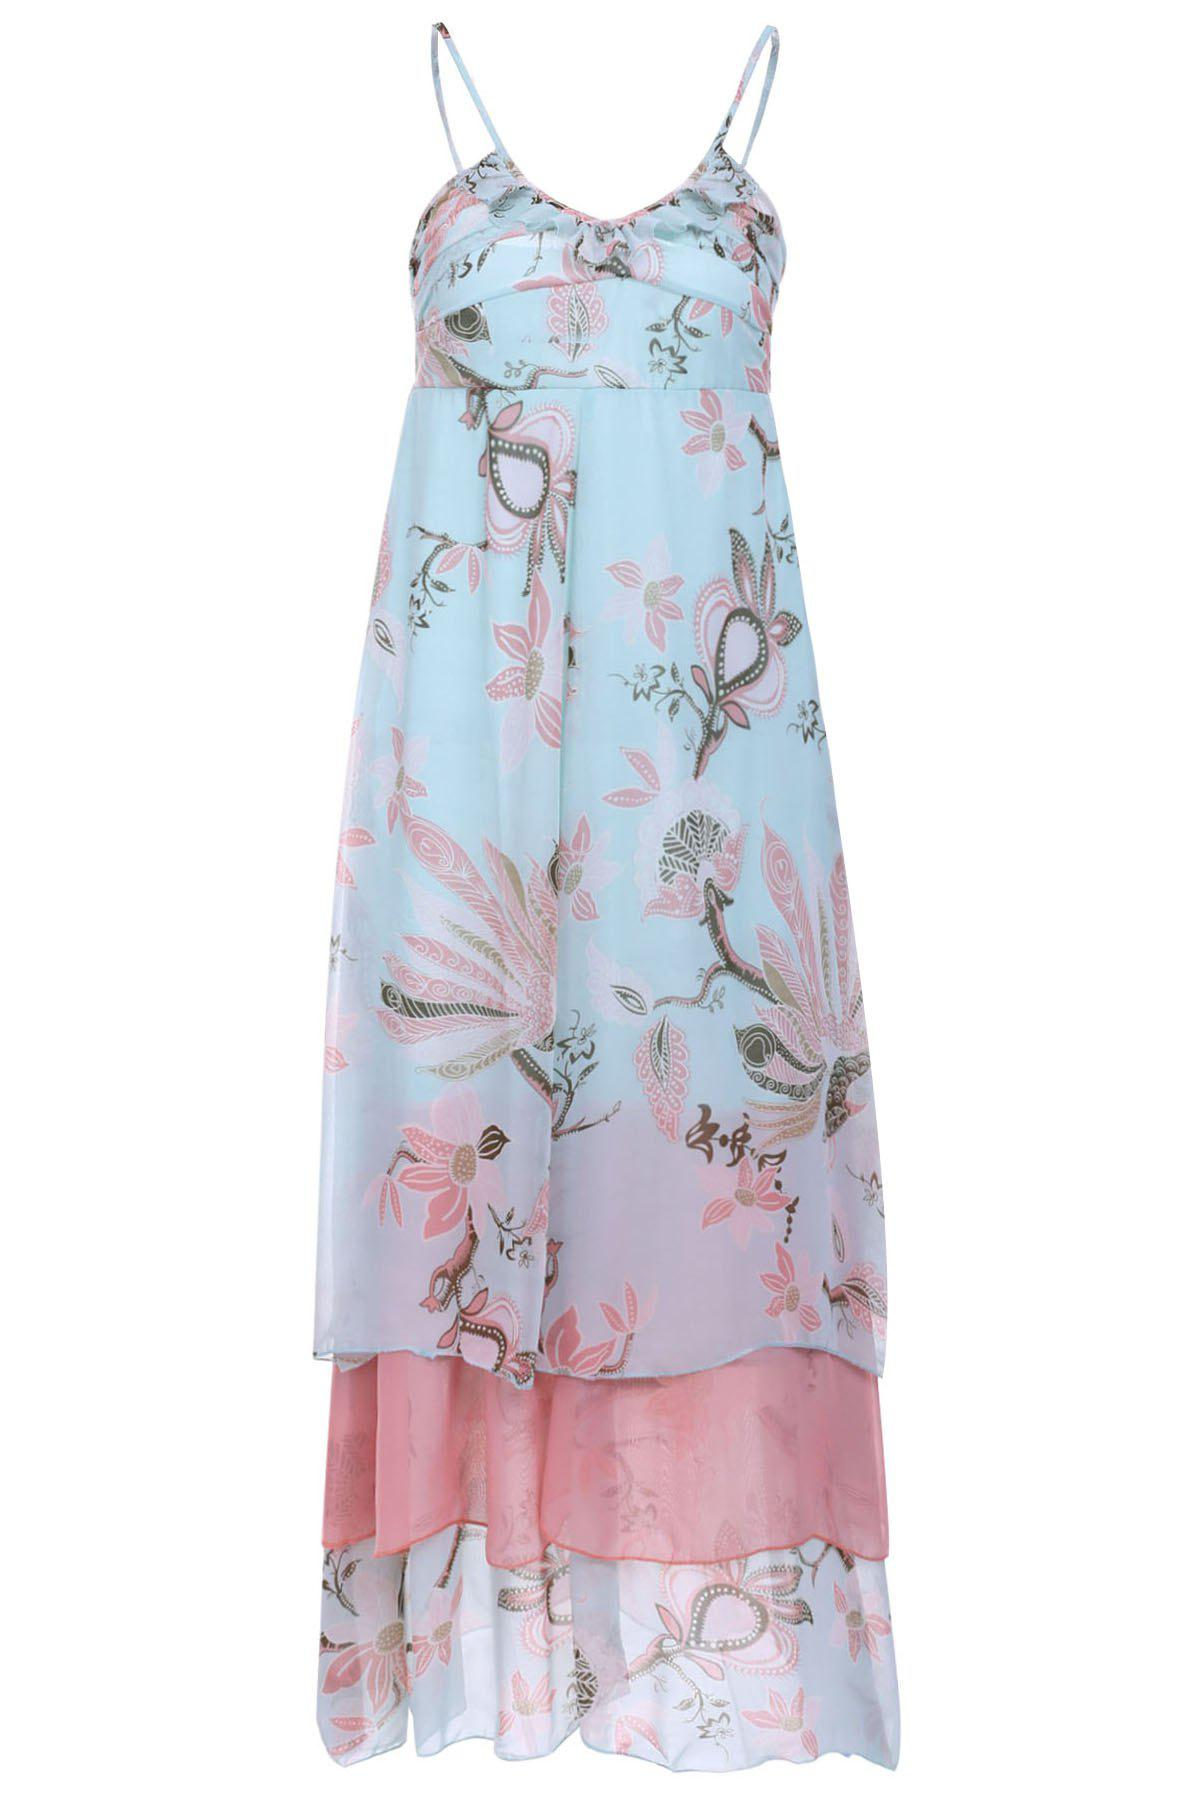 Spaghetti Strap Lotus Printing High Waist Chiffon Dress For Women - AS THE PICTURE S